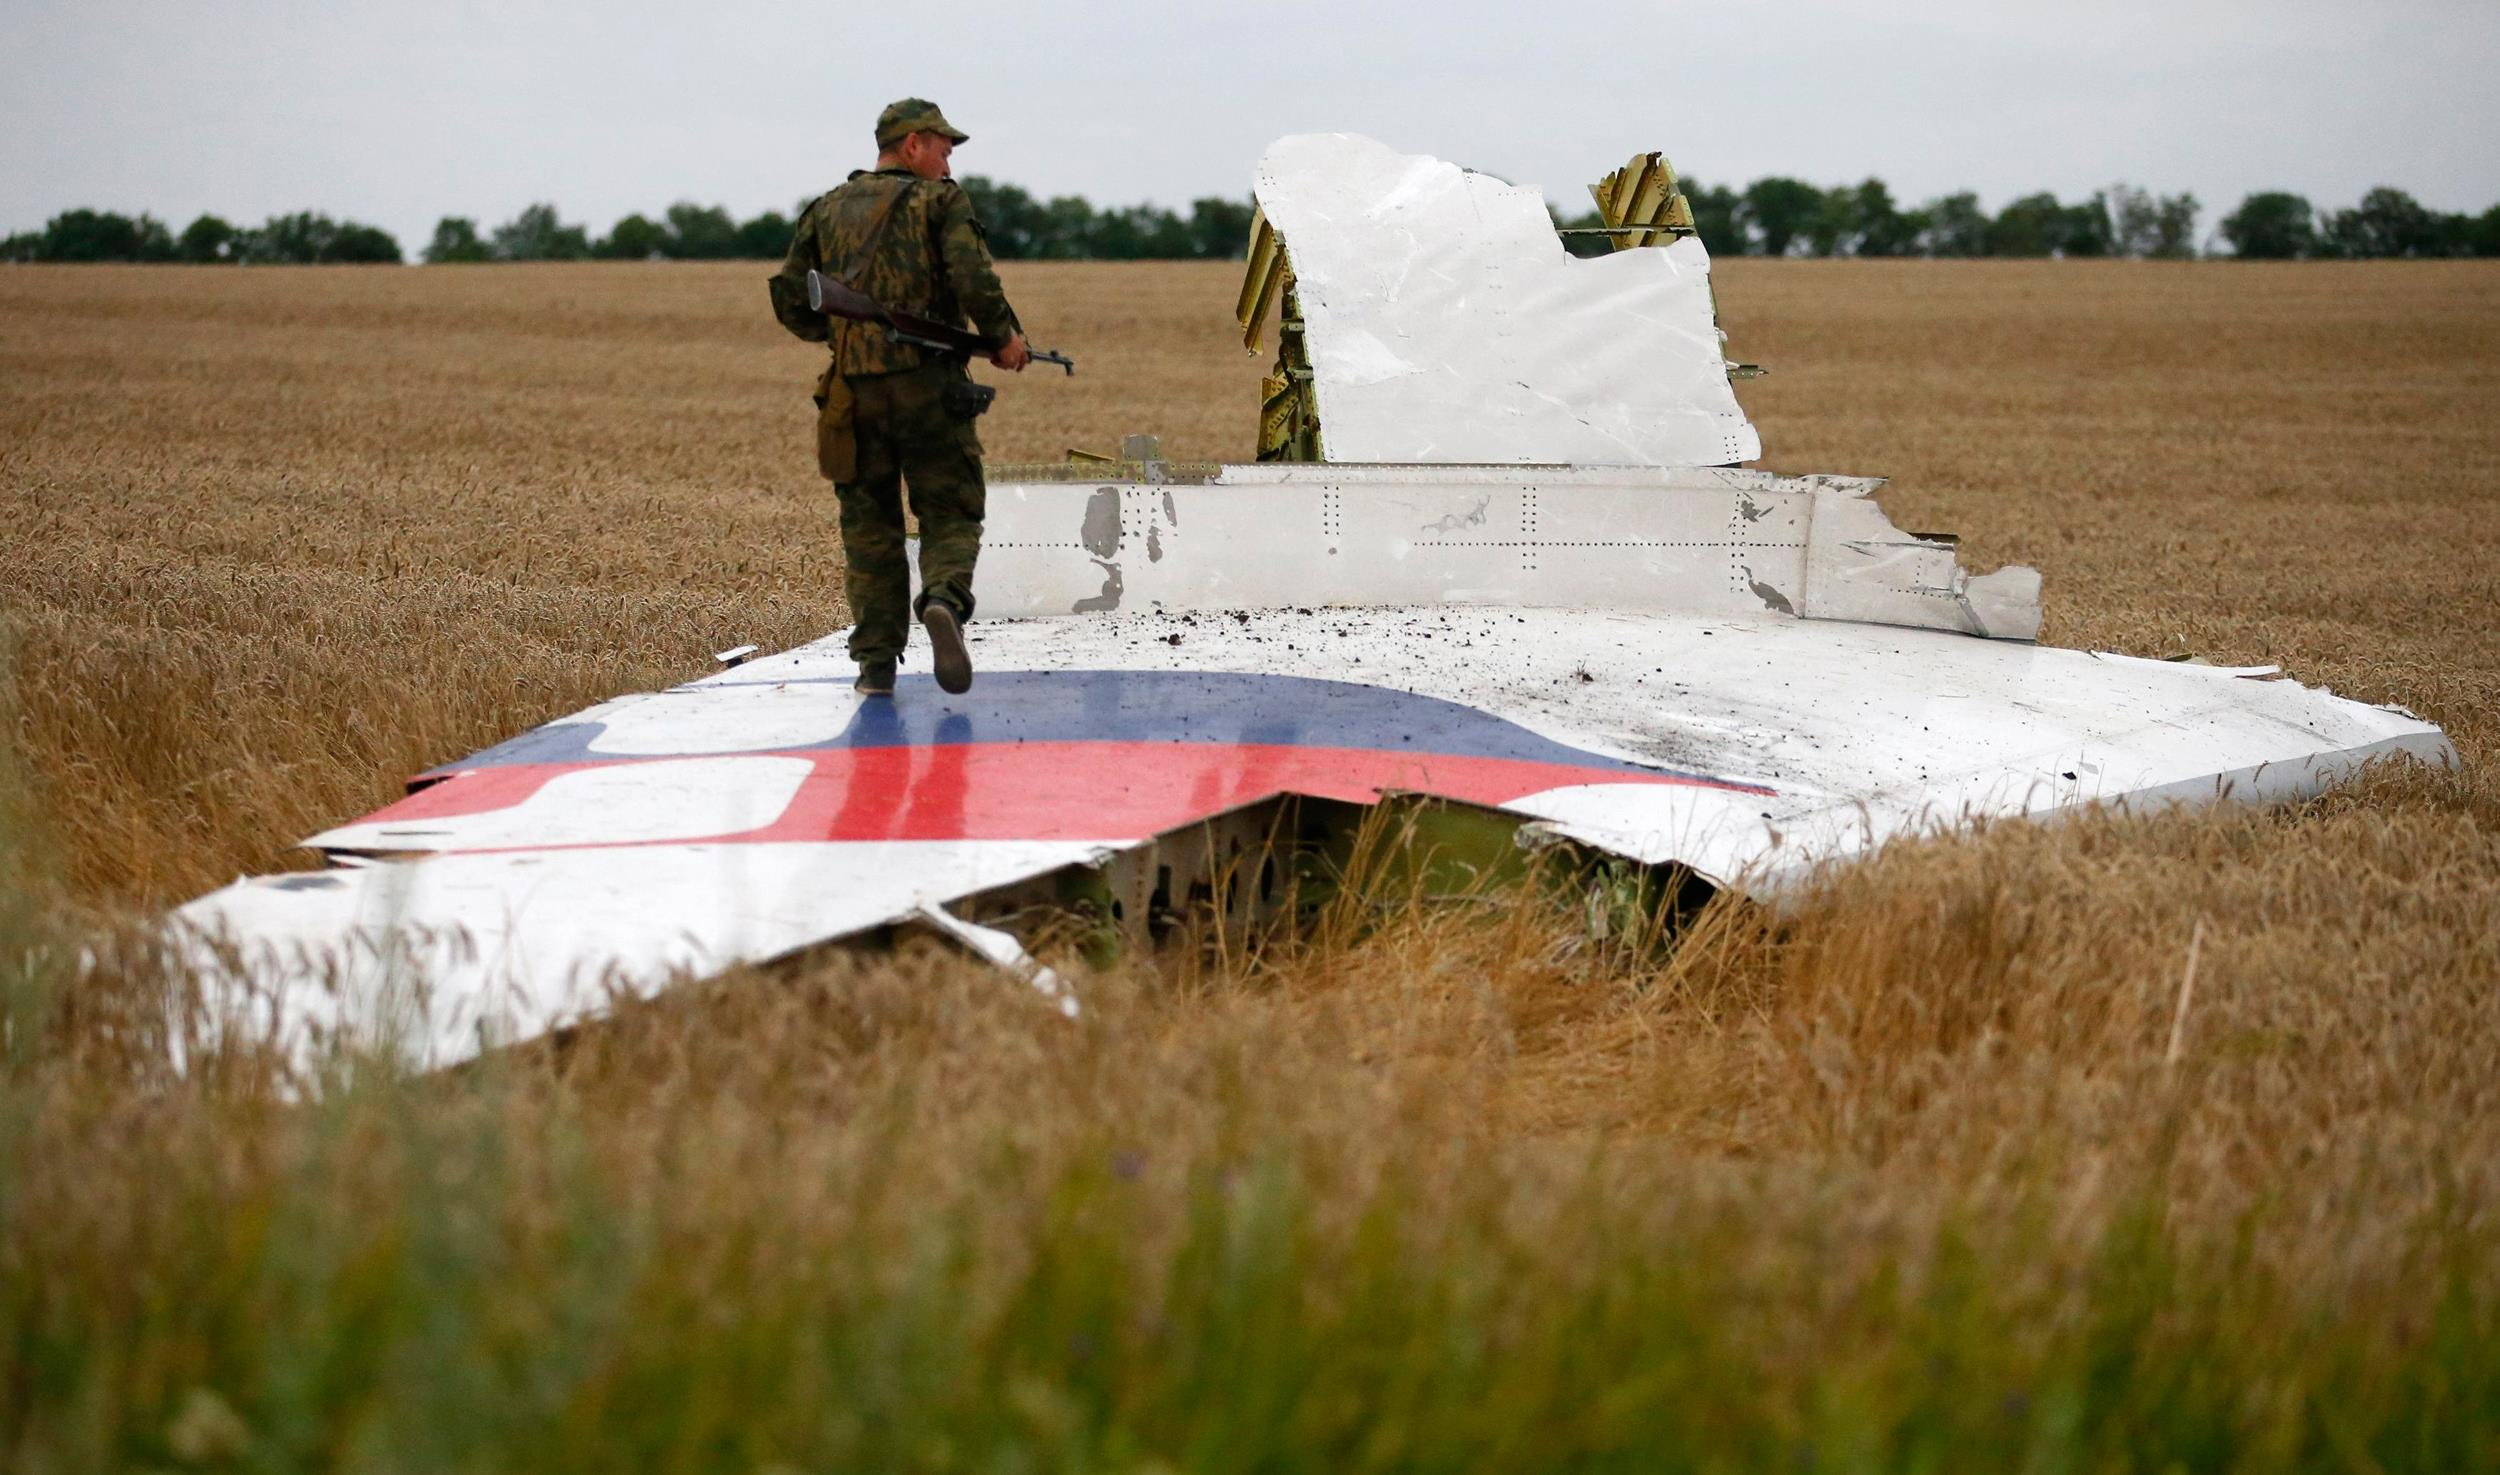 Image: An armed pro-Russian separatist stands on part of the wreckage of the Malaysia Airlines Boeing 777 plane